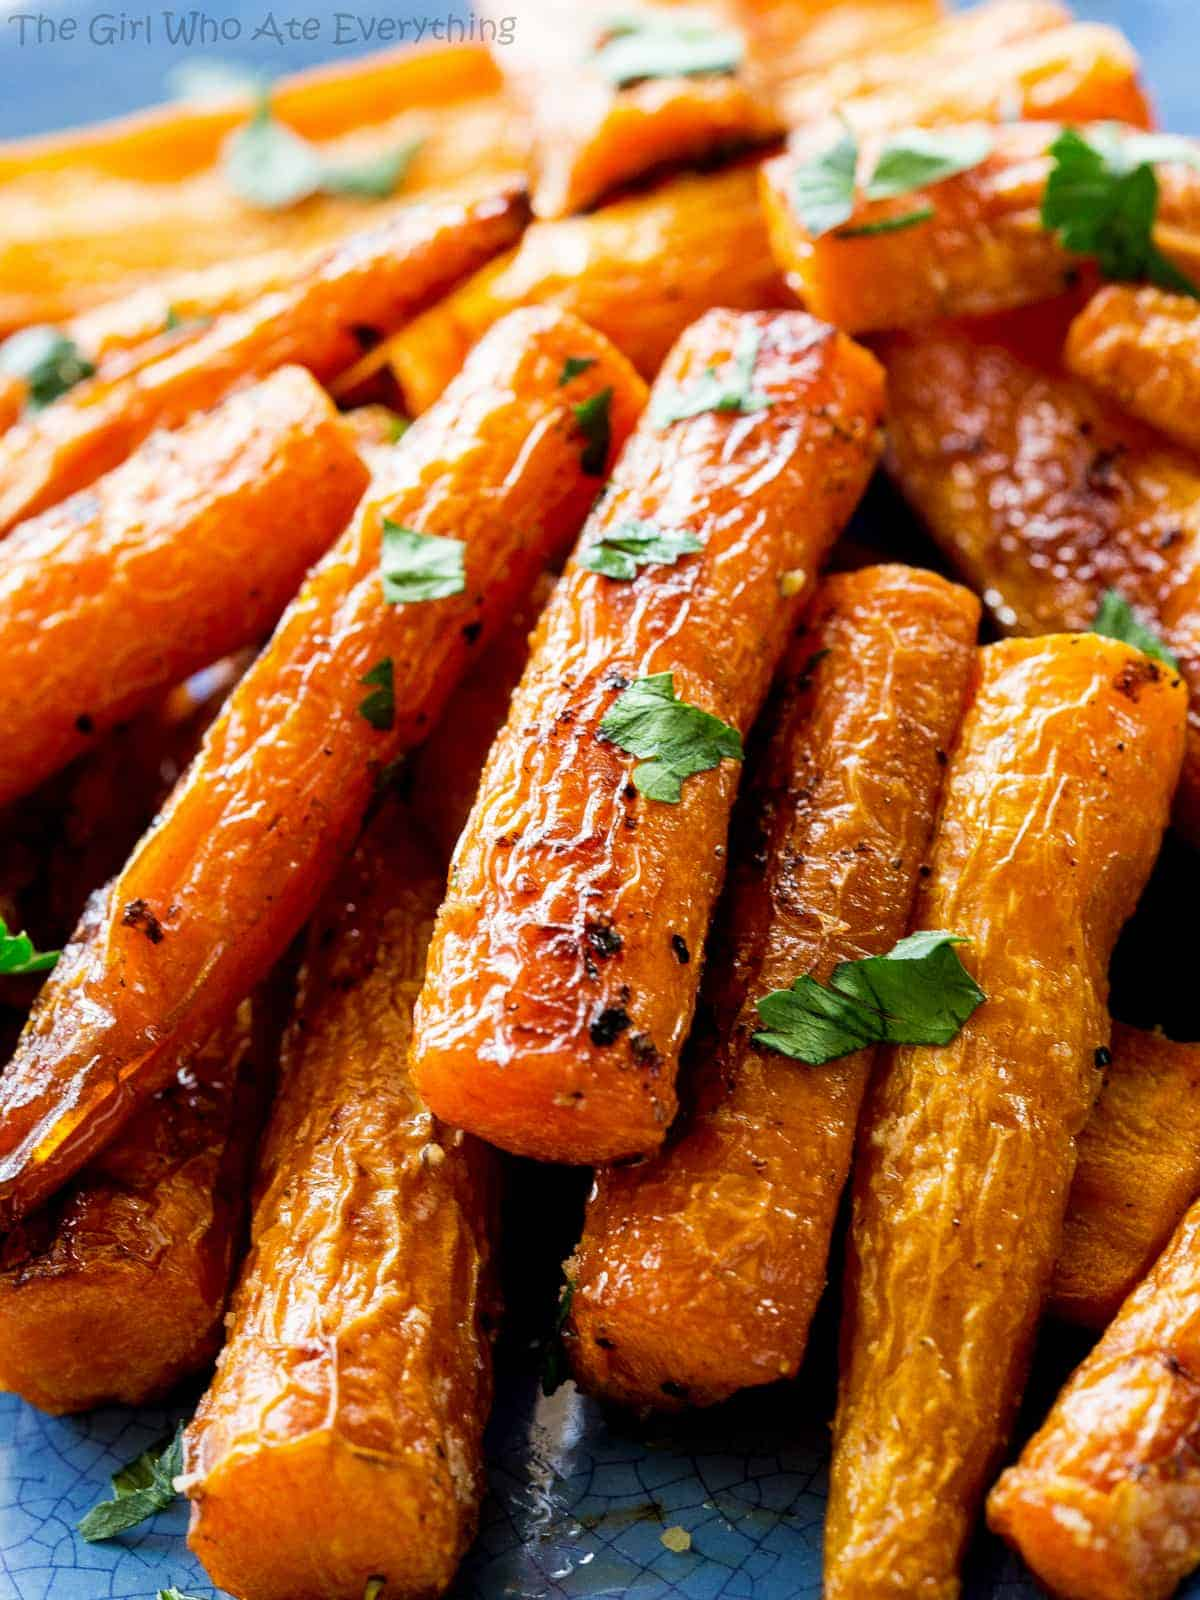 Perfectly Roasted Carrots The Girl Who Ate Everything